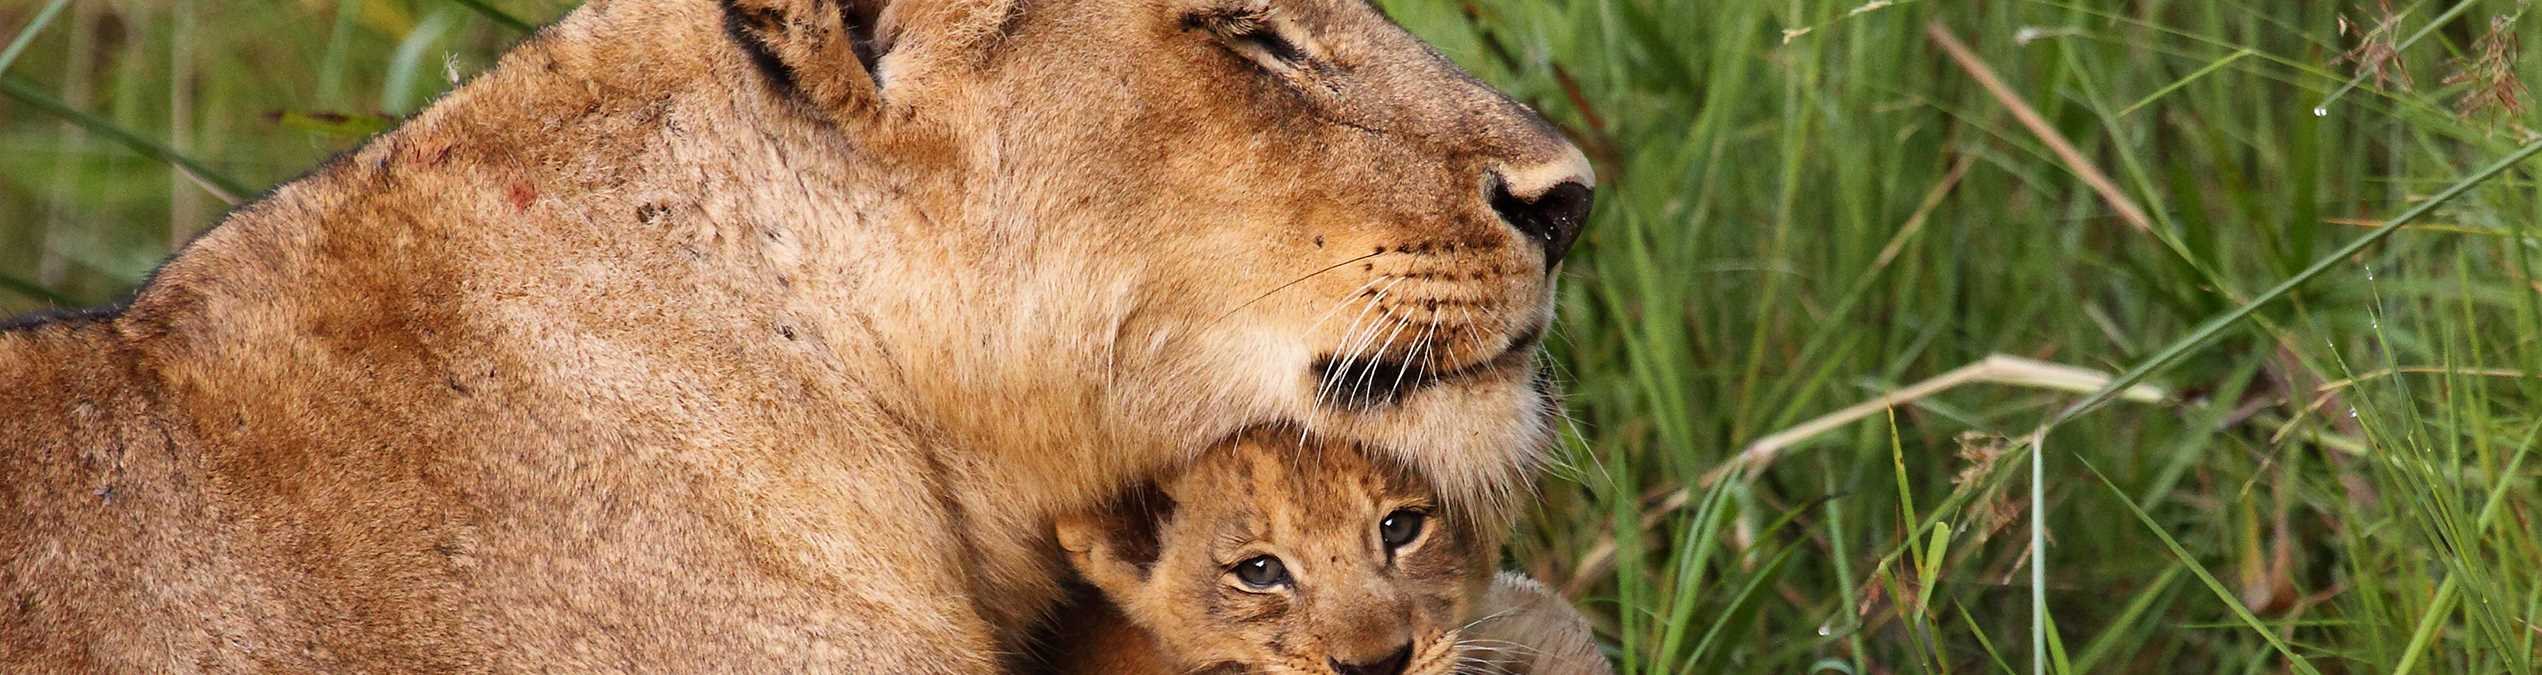 Safari Club - Kenya_Liakipia_Lioness_and_cubs